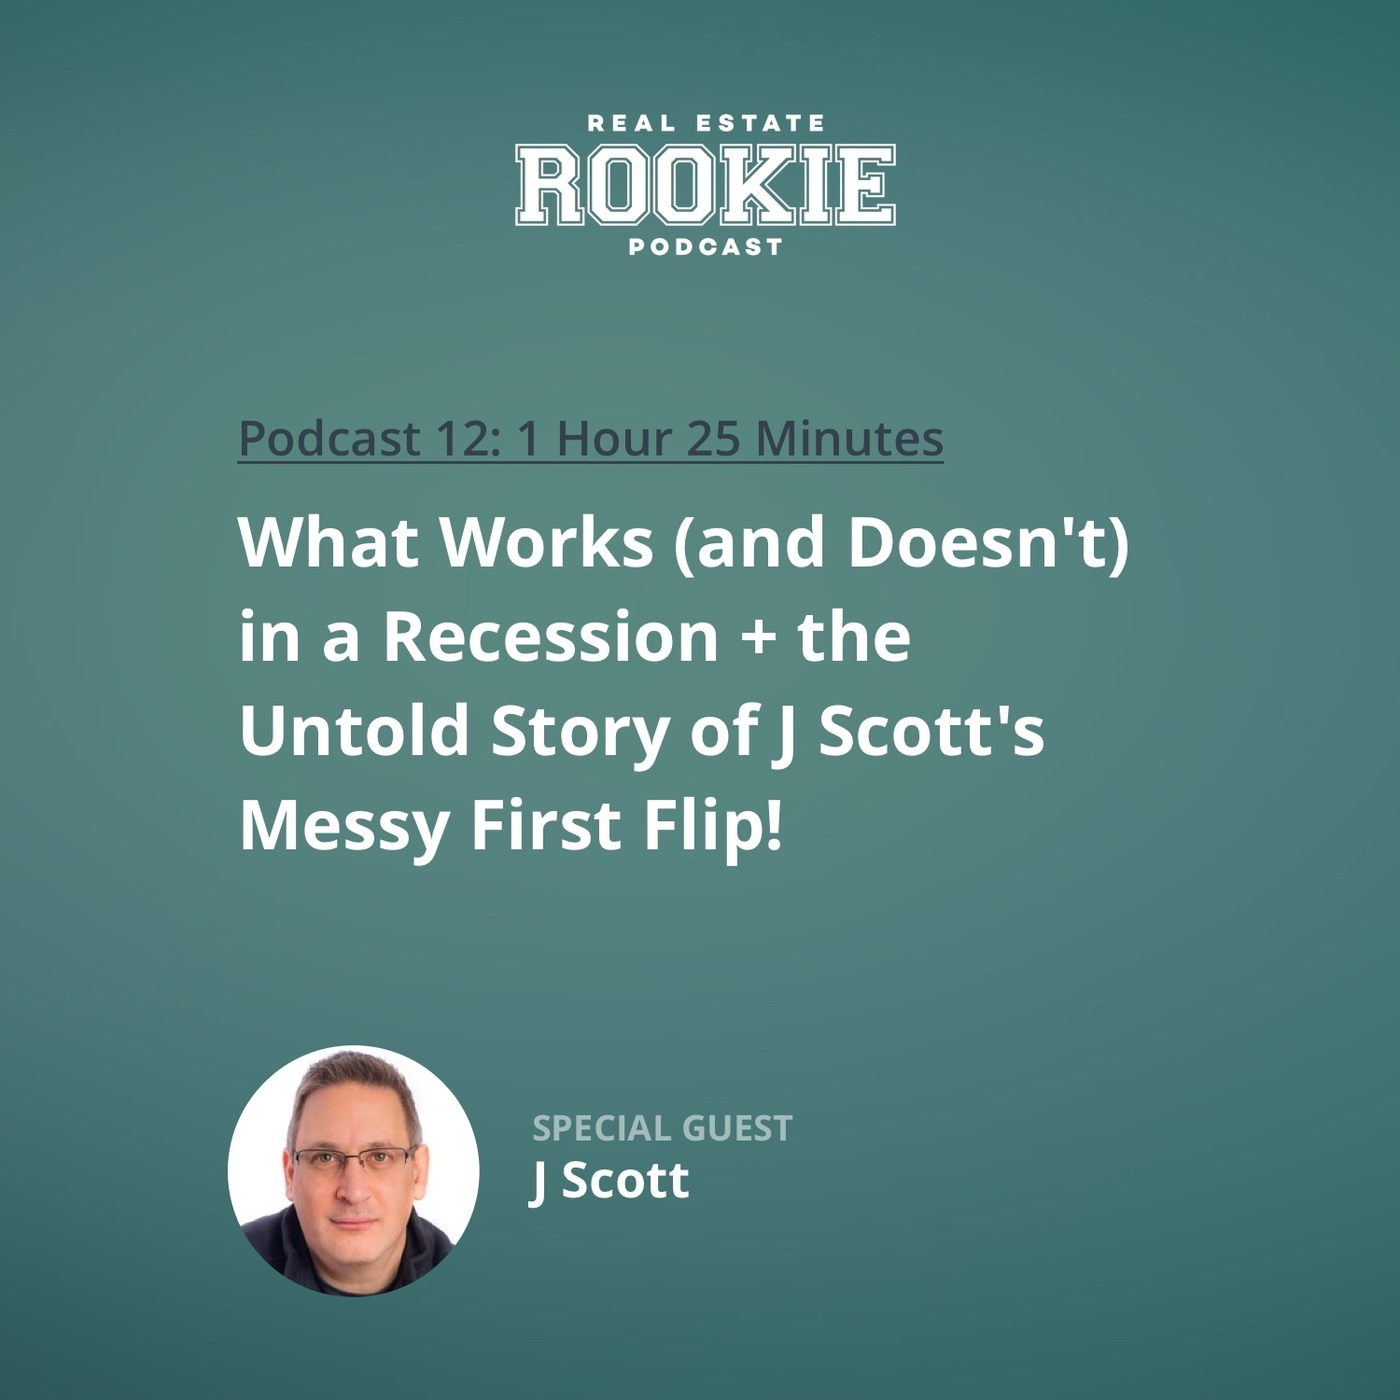 What Works (and Doesn't) in a Recession & the Untold Story of J Scott's Messy First Flip